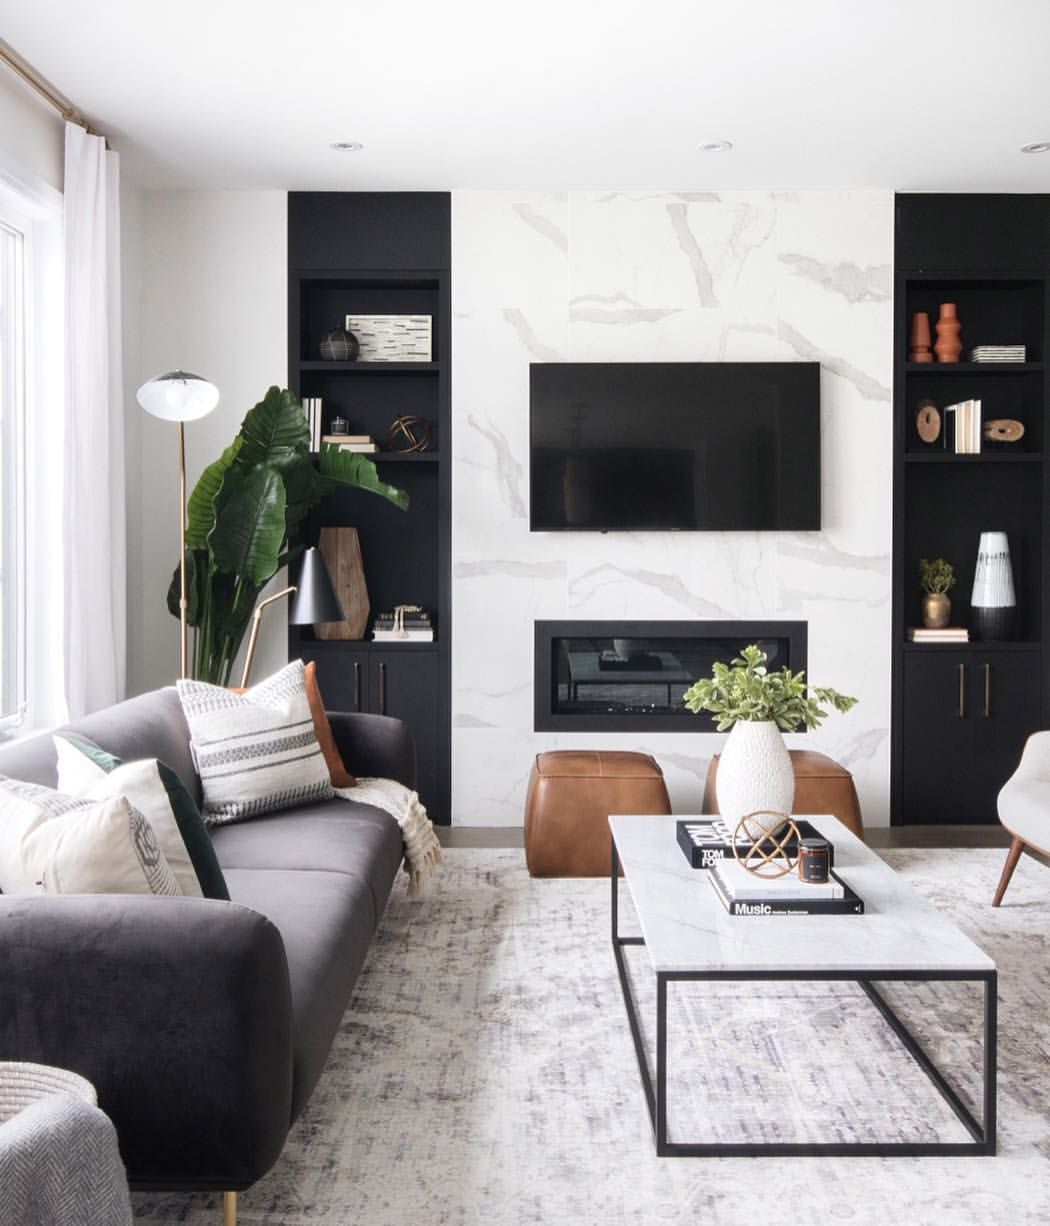 Opposite Side View Of The Cedarbreeze Living Room Featuring The Tate Sofa From Ldsho Modern Living Room Interior Living Room White Black And White Living Room View home decor for living room table